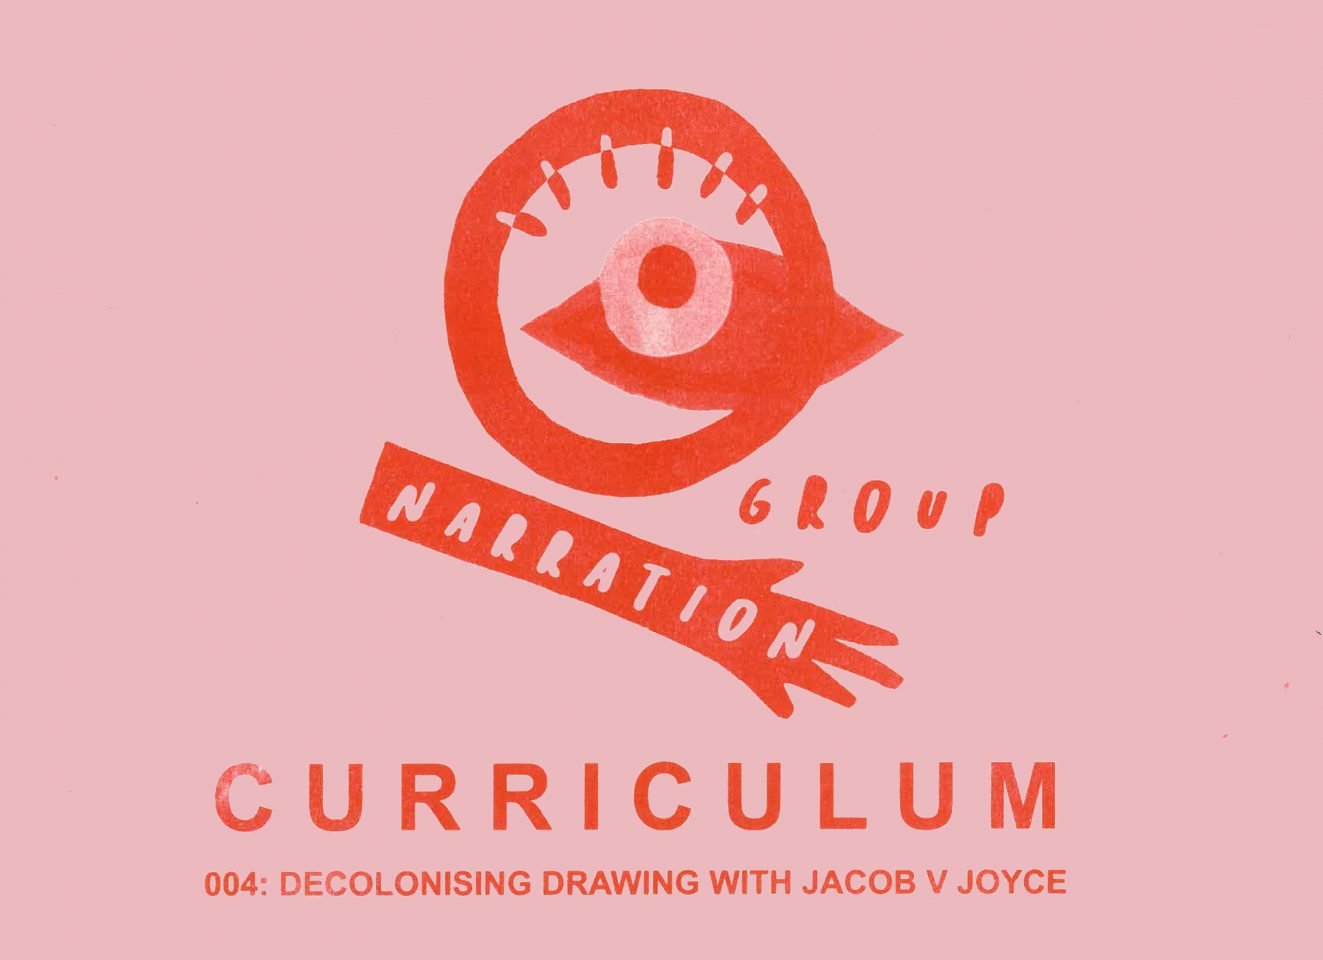 CURRICULUM 004: Decolonising drawing with Jacob V Joyce